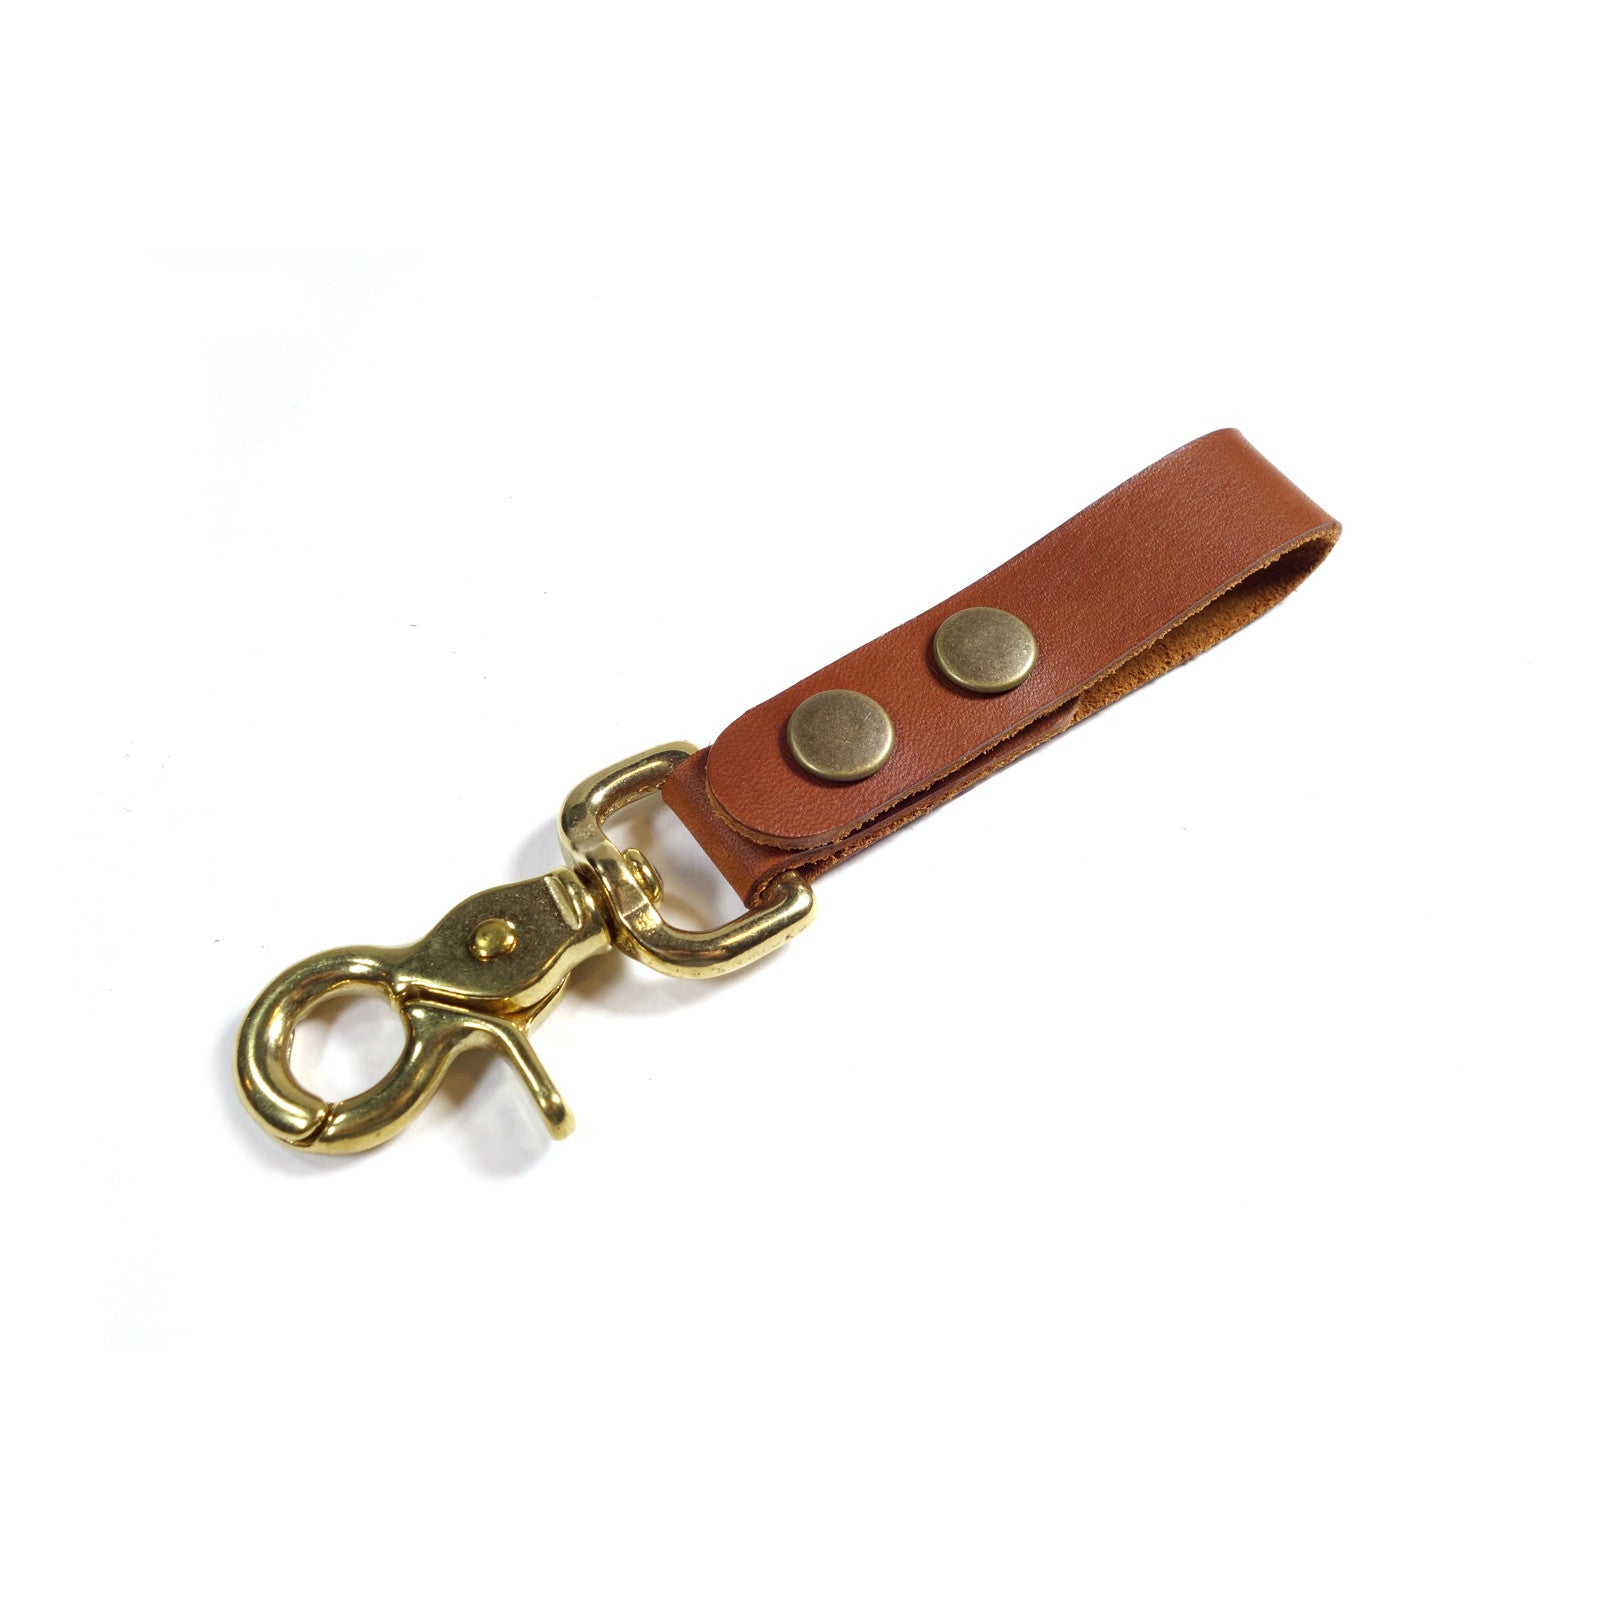 key fob, red clouds key fob, key chain, leather, lanyard, key ring, keychain, made in usa, handcrafted